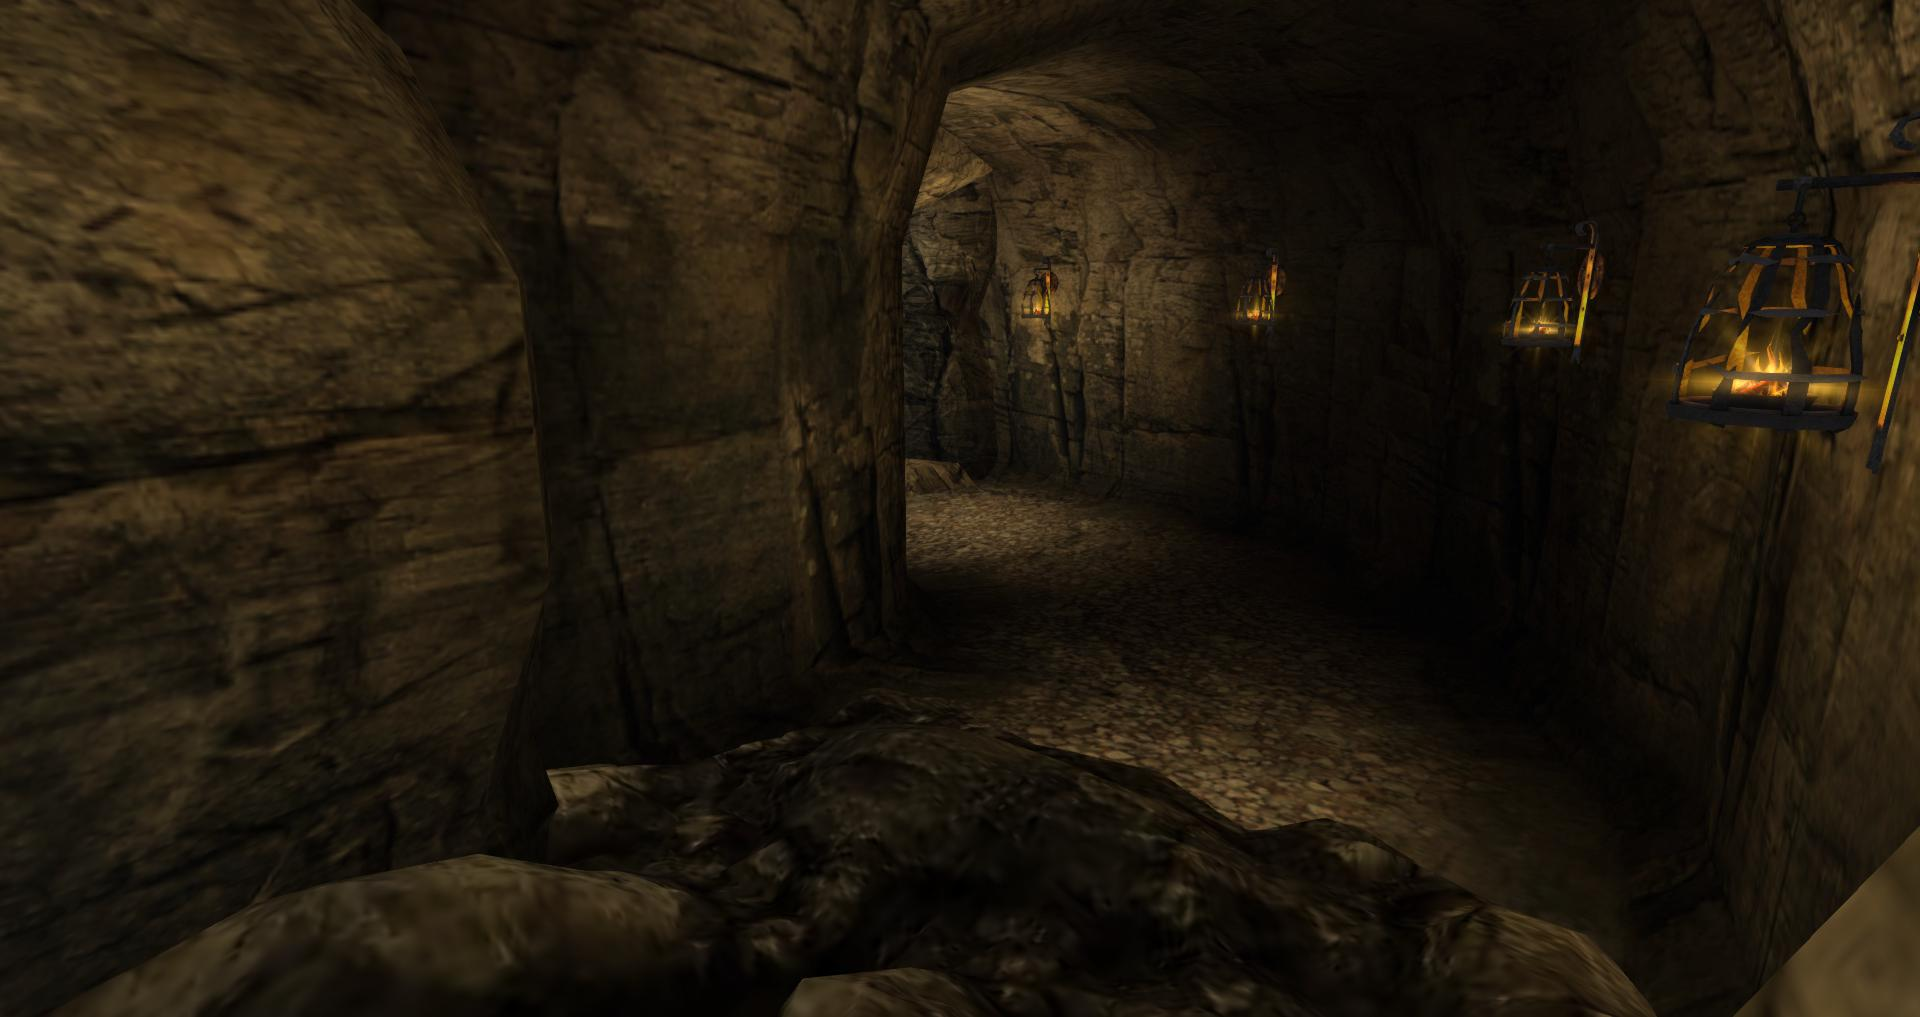 The latest version of decorated caves_002